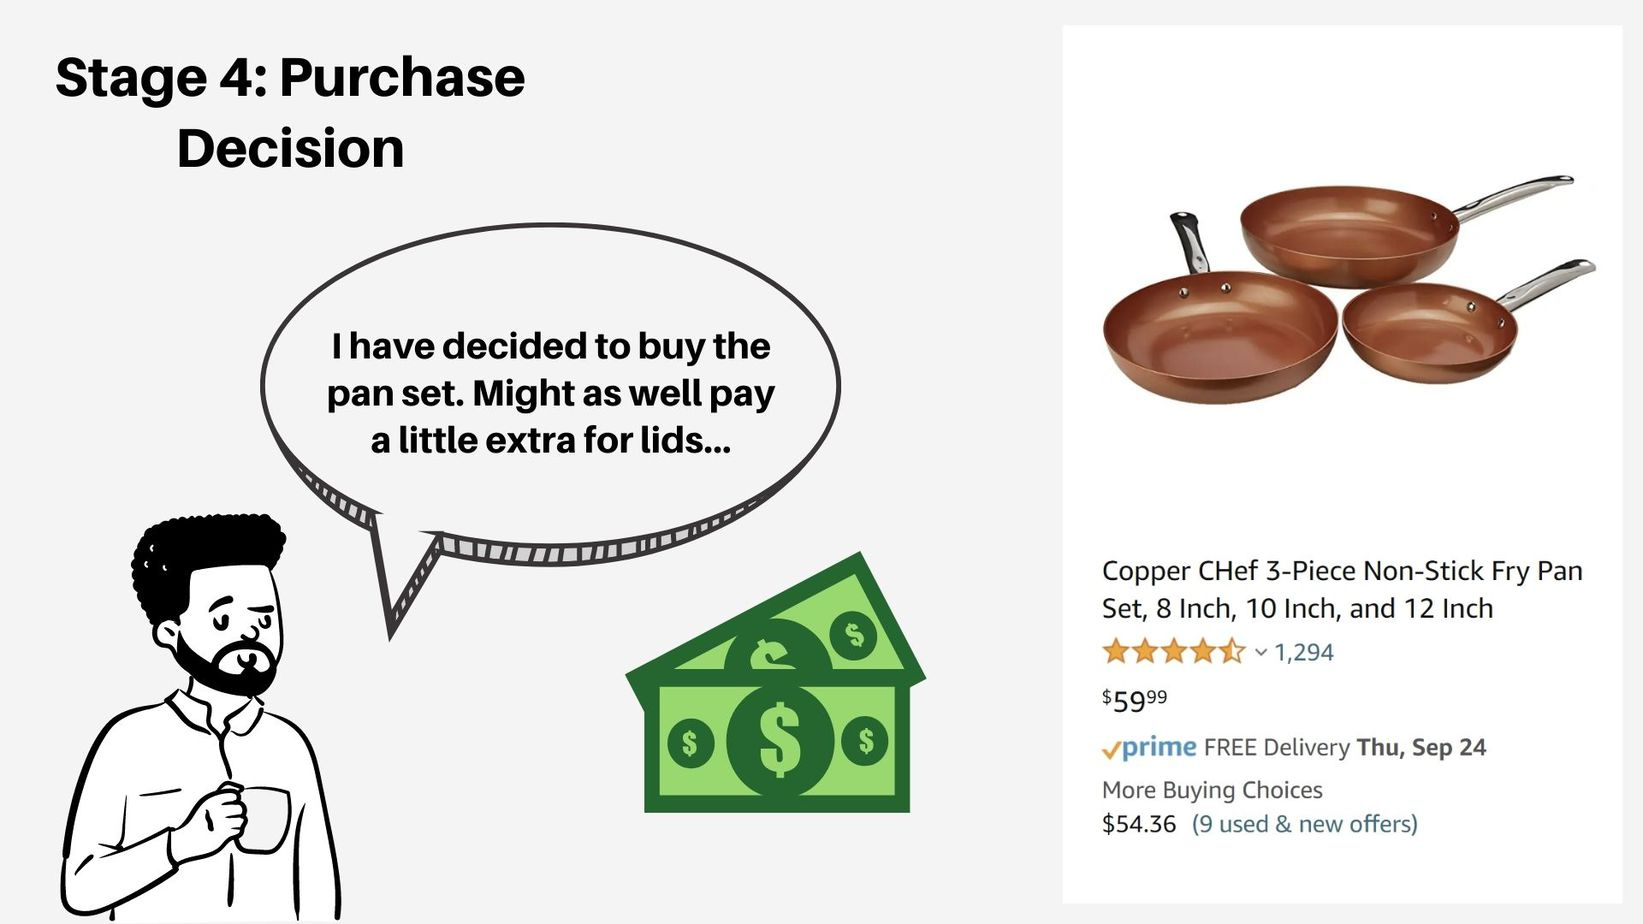 purchase decision stage 4